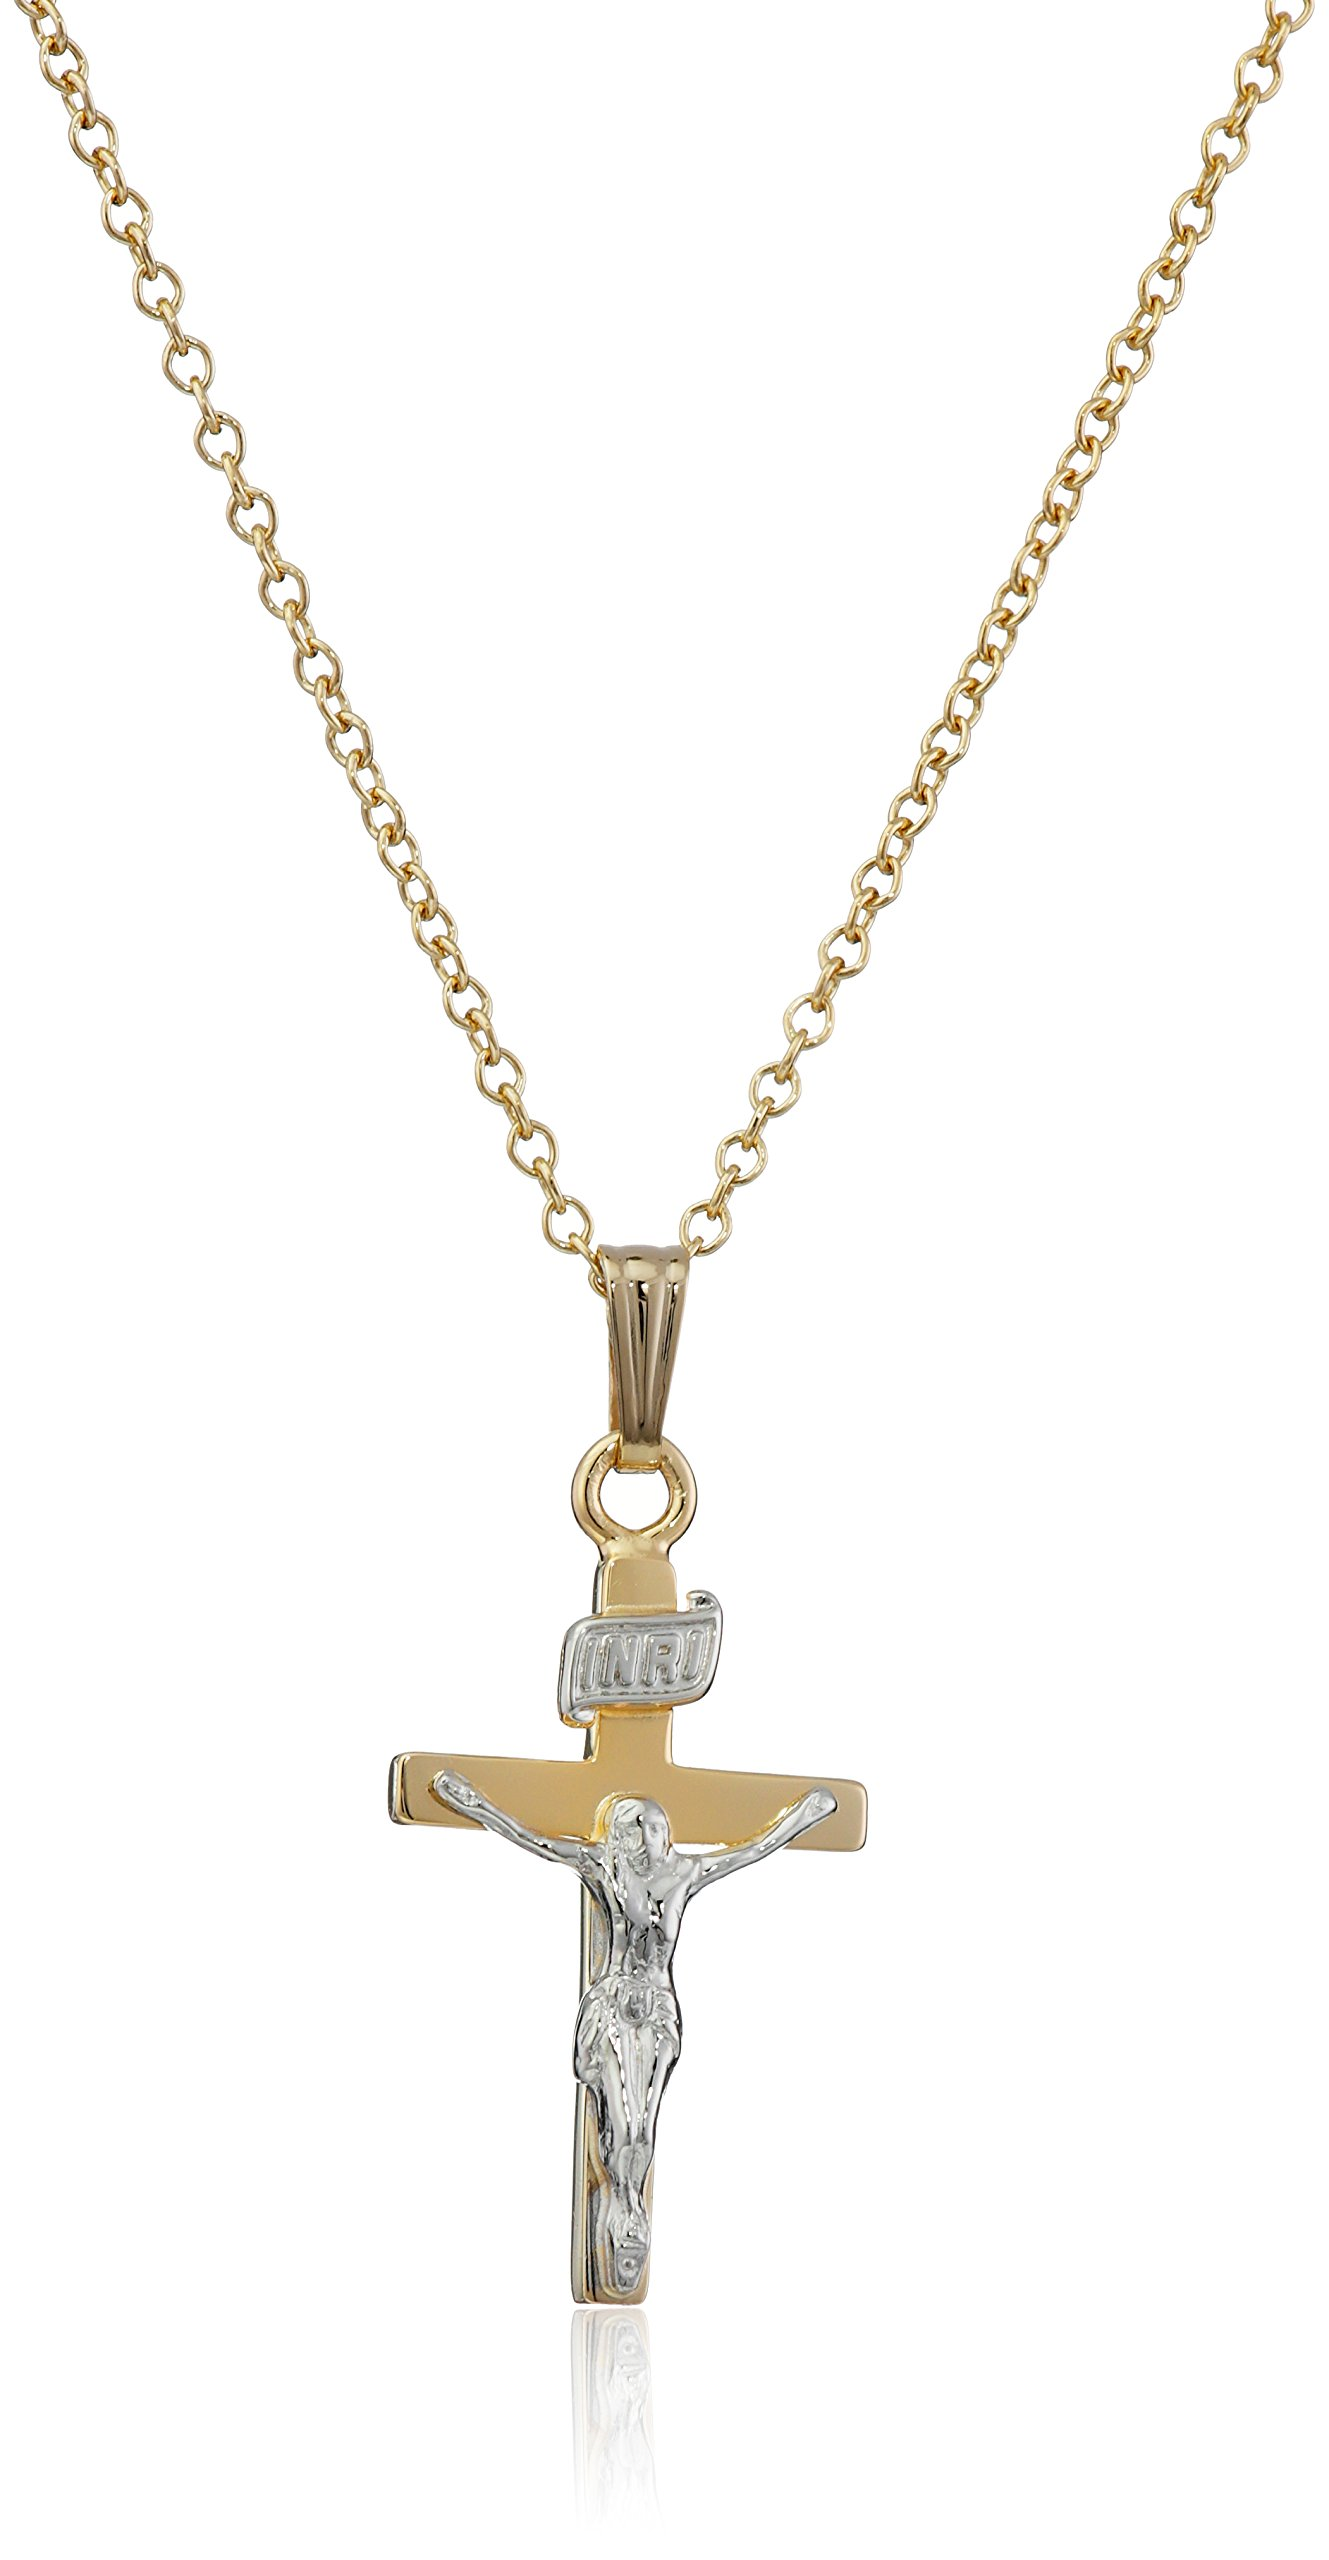 Children's 14k Gold-Filled Two-Tone Crucifix Cross Pendant Necklace, 15''